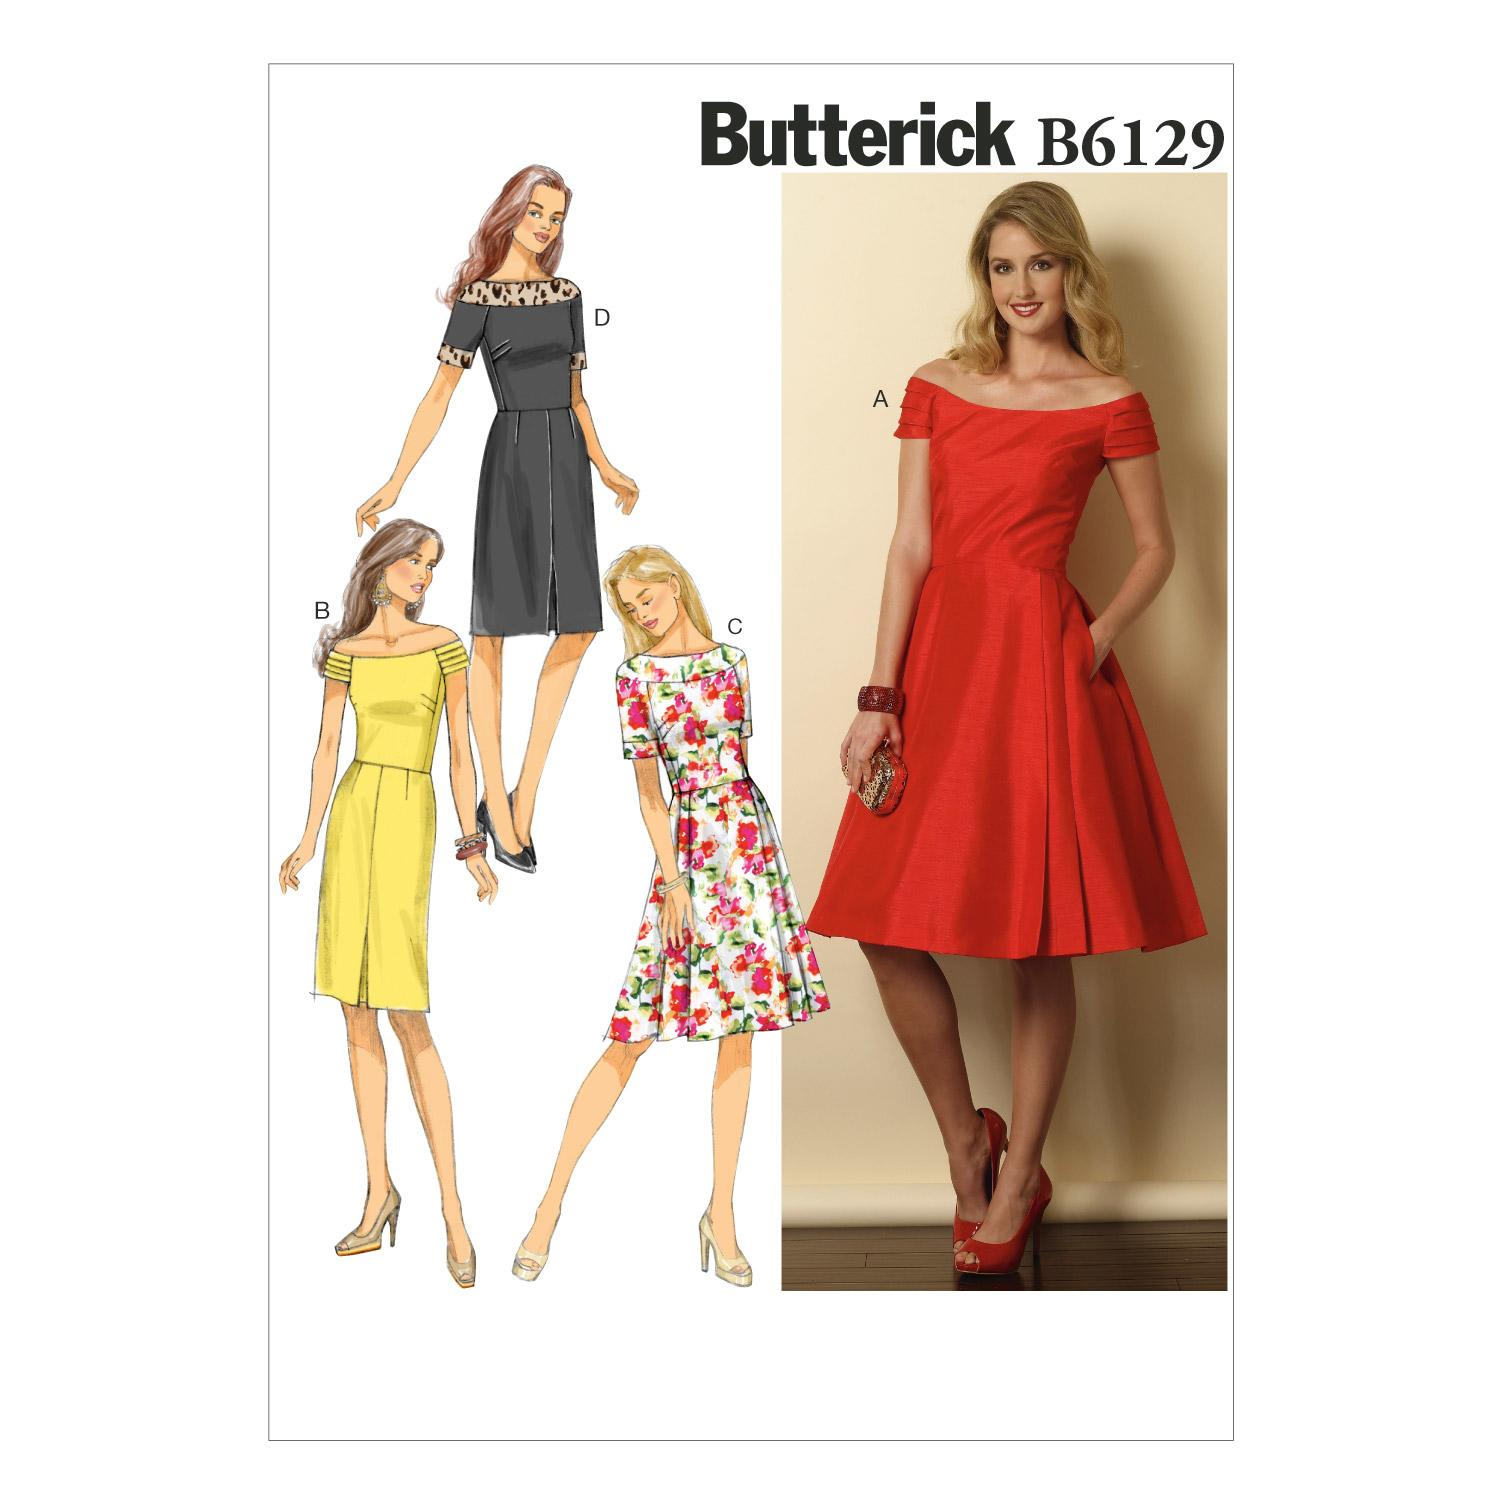 Butterick B6129 Misses'/Misses' Petite Dress